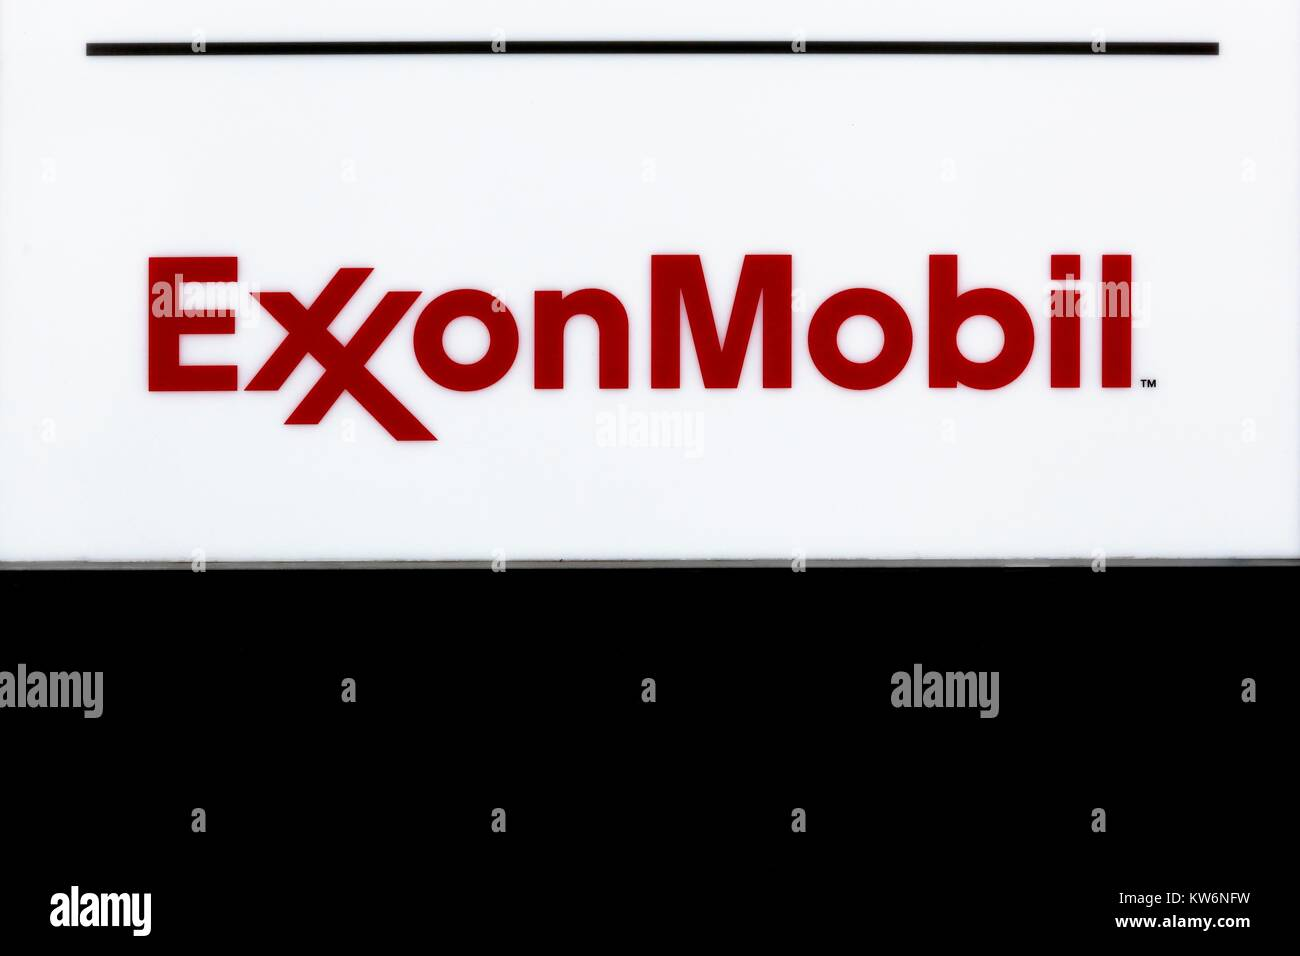 Hamburg, Germany - July 21, 2017: Exxon Mobil logo on a wall. Exxon Mobil Corporation is an American multinational - Stock Image